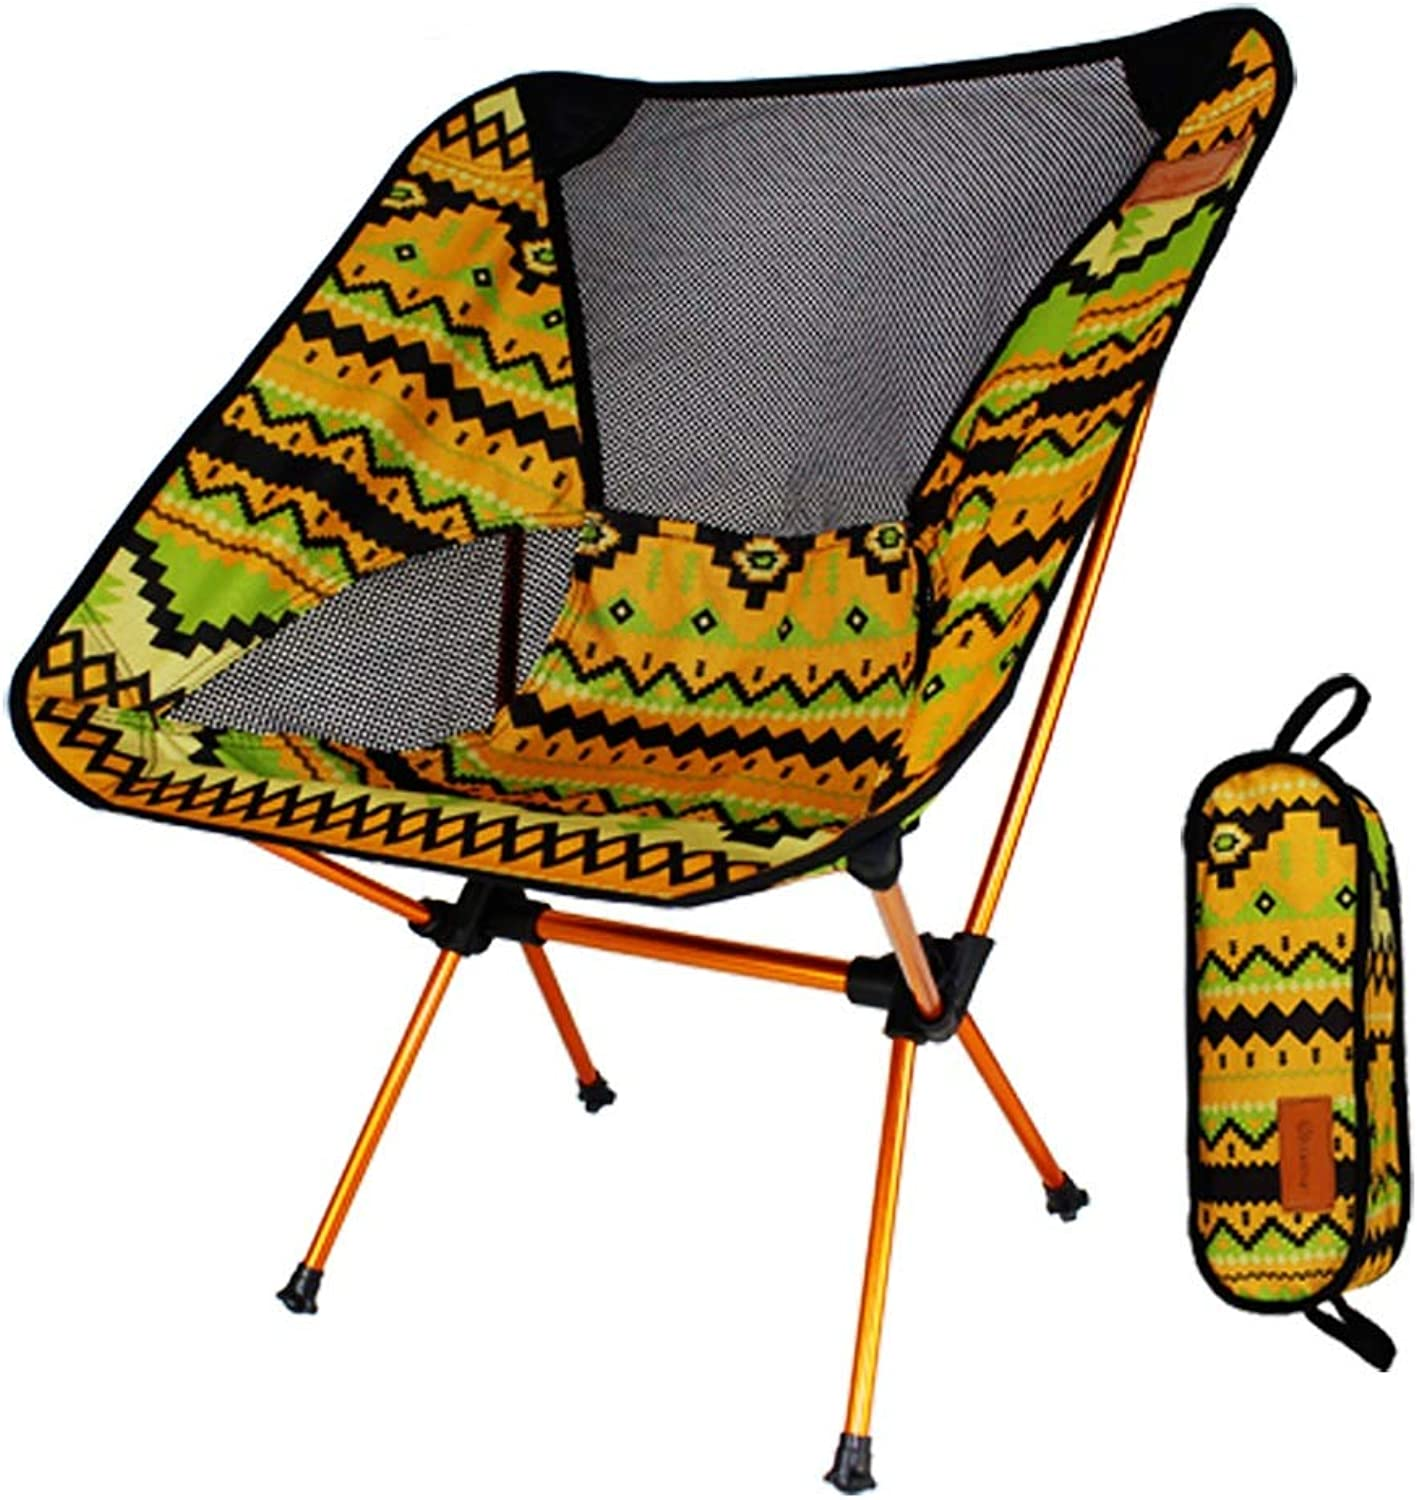 Ultralight Folding Chairs Portable Fishing Chair with Carry Bag for Outdoor Activities,Camping,BBQ, Beach,Backpacking ,Super Comfort,Versatility (color   Yellow)